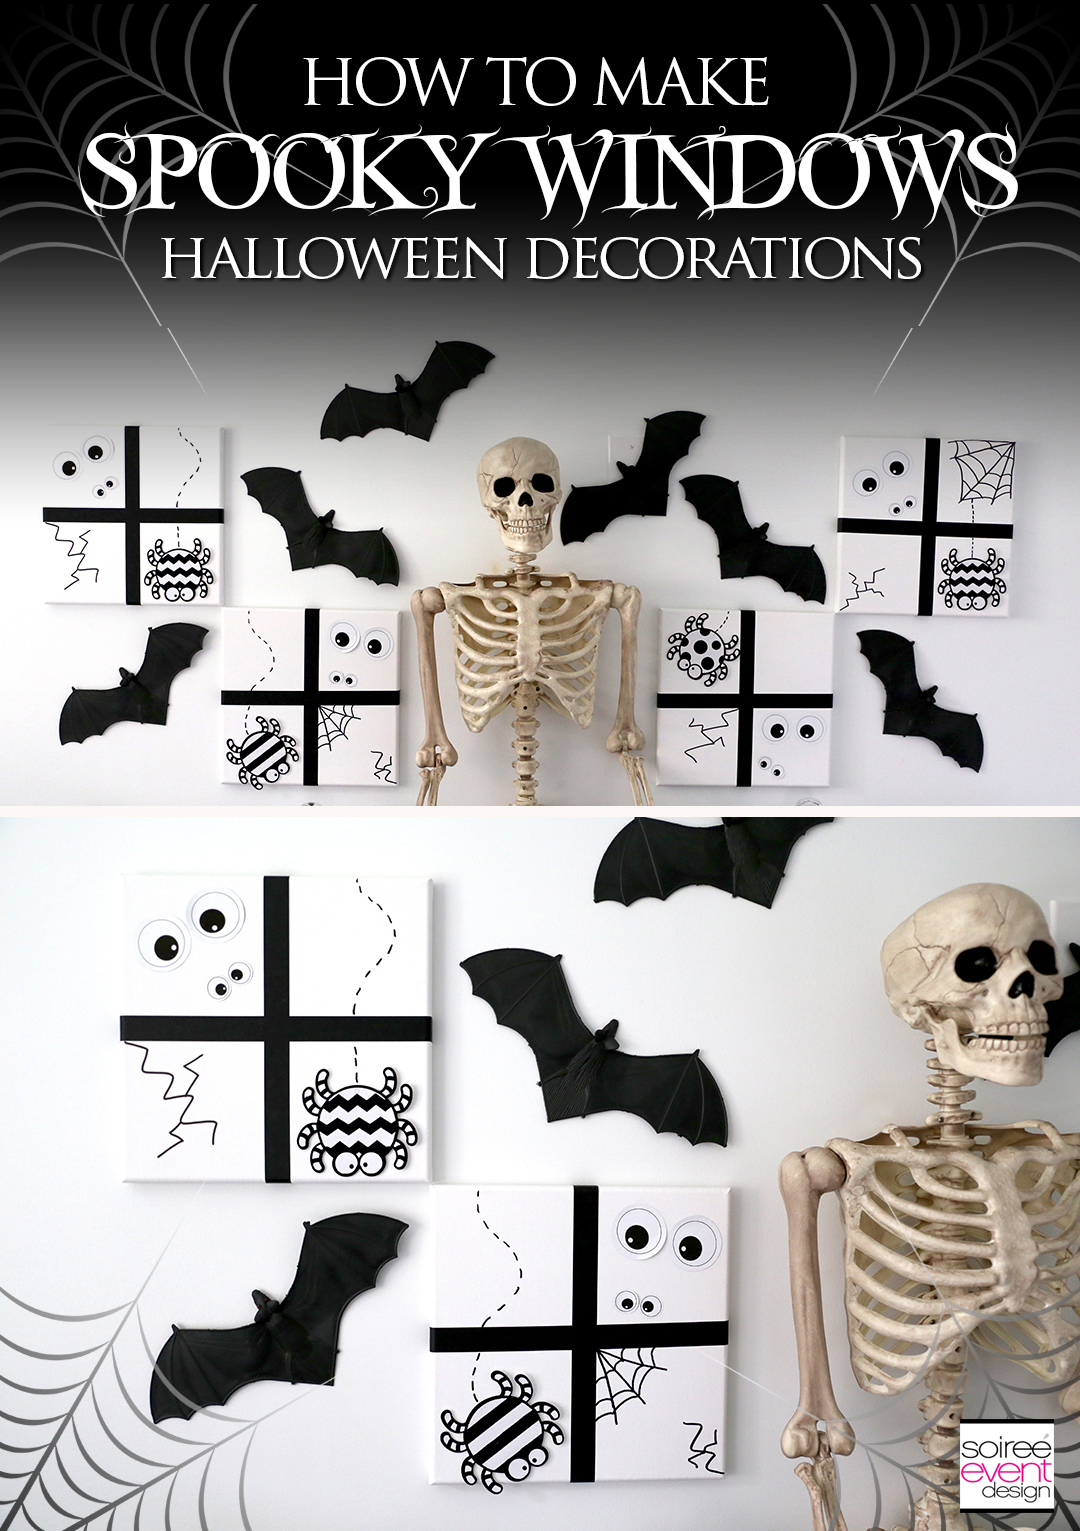 DIY Spooky Windows Halloween Decorations